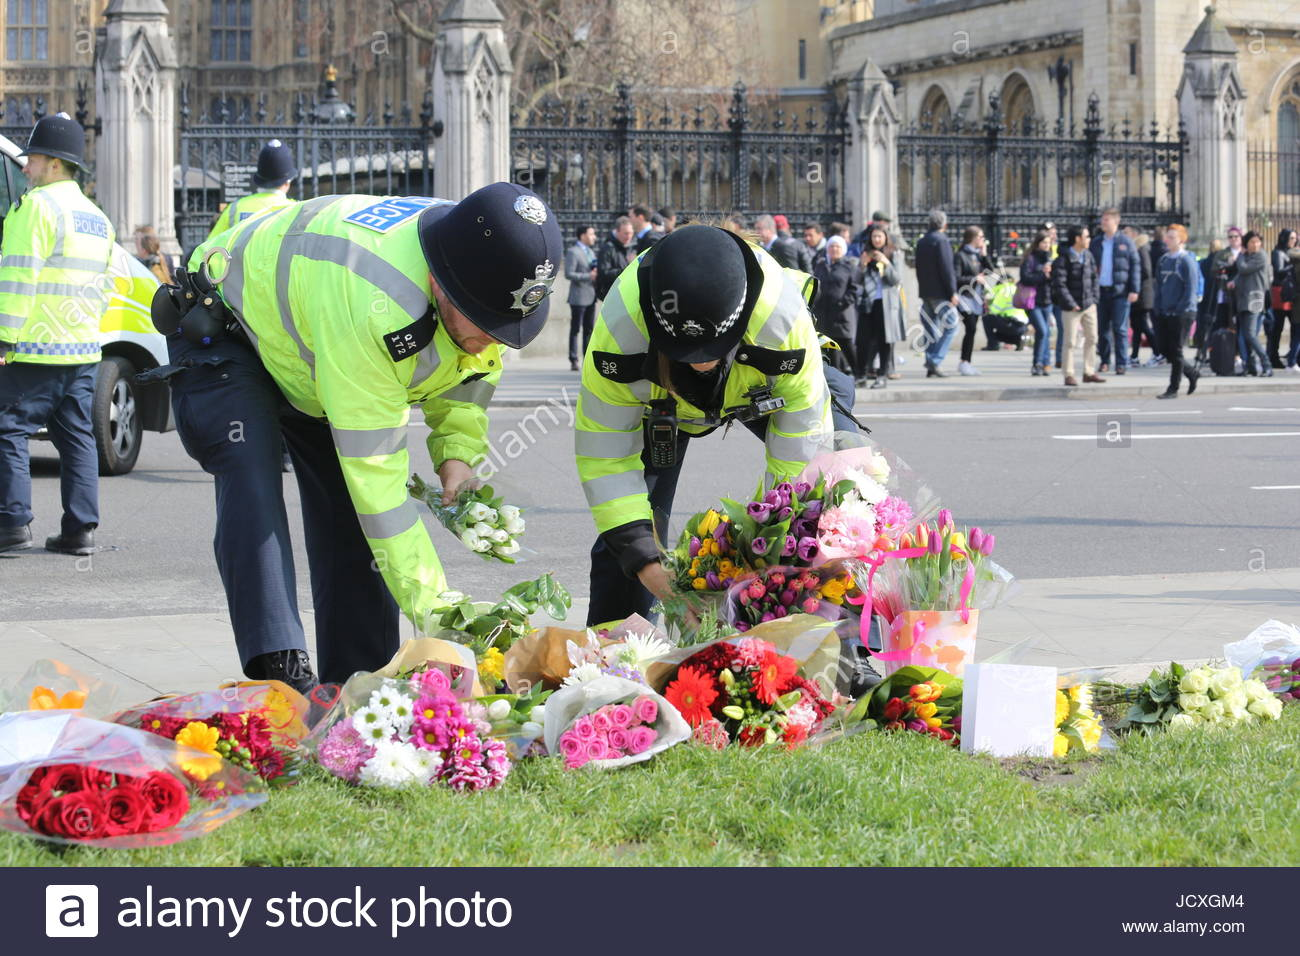 Two police officers lay flowers as part of the tribute to PC Keith Palmer and other victims of the London terror - Stock Image